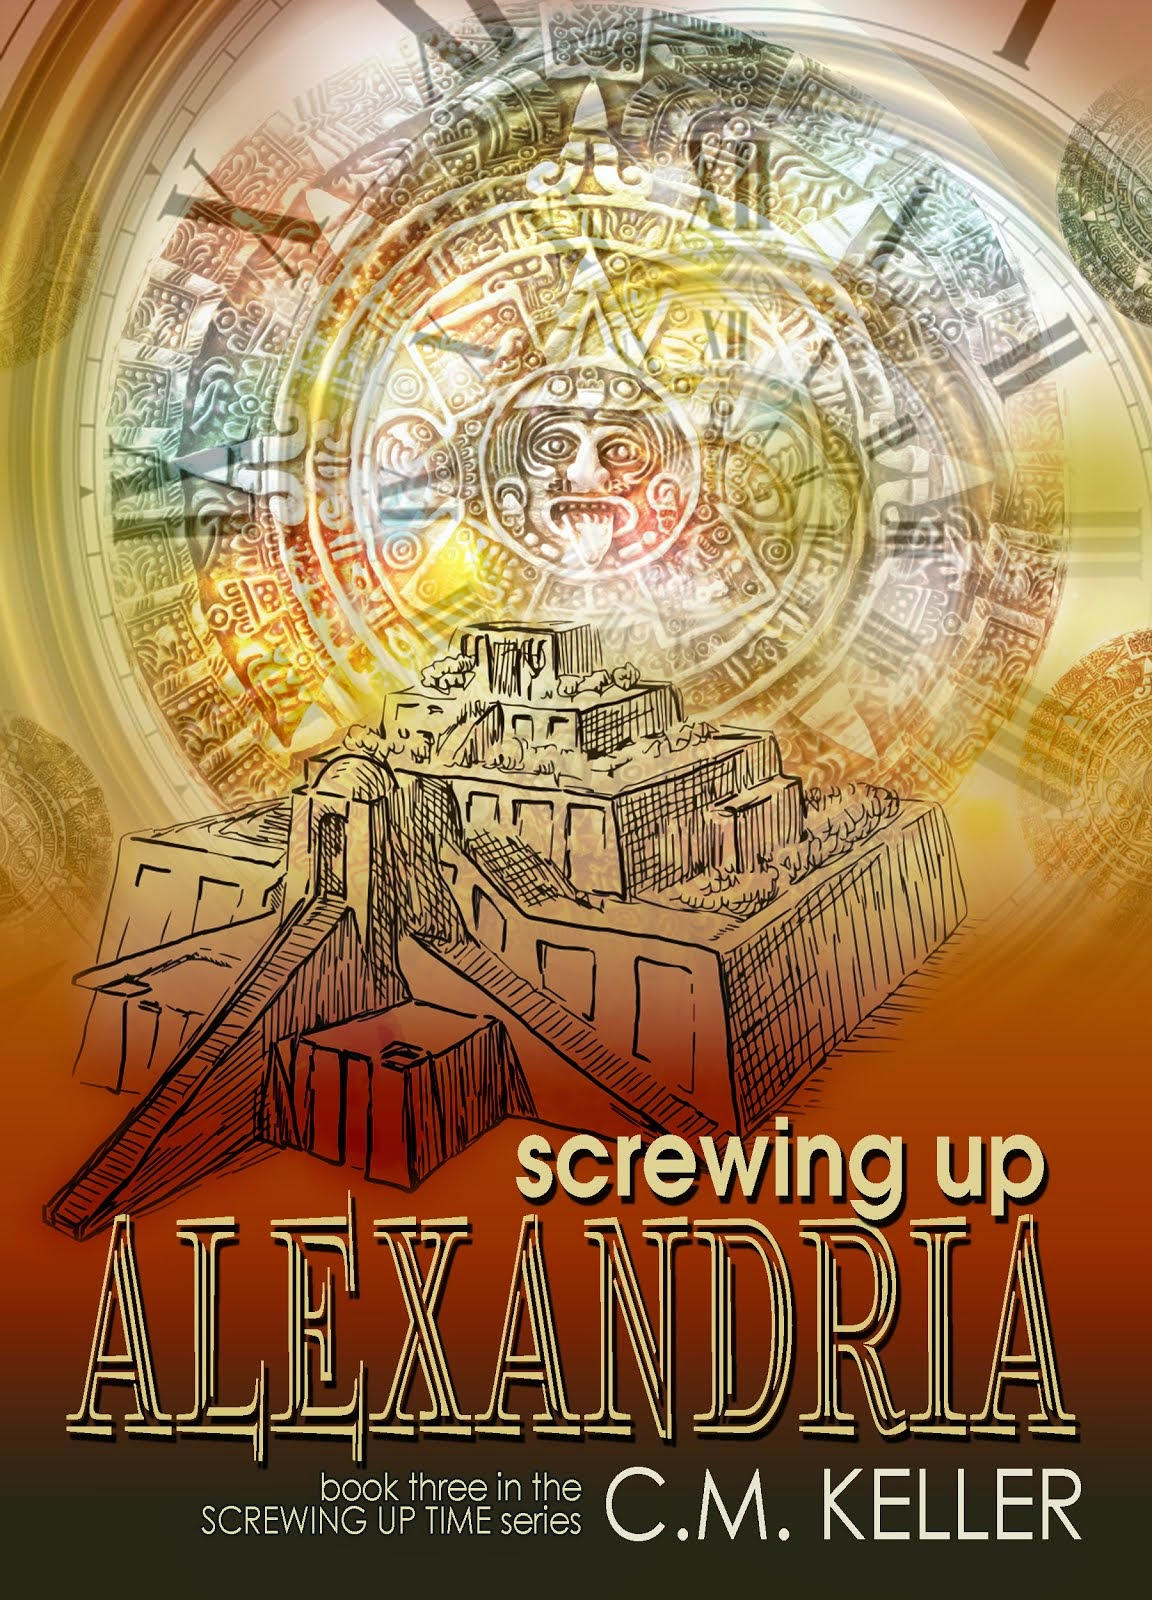 Screwing Up Alexandria